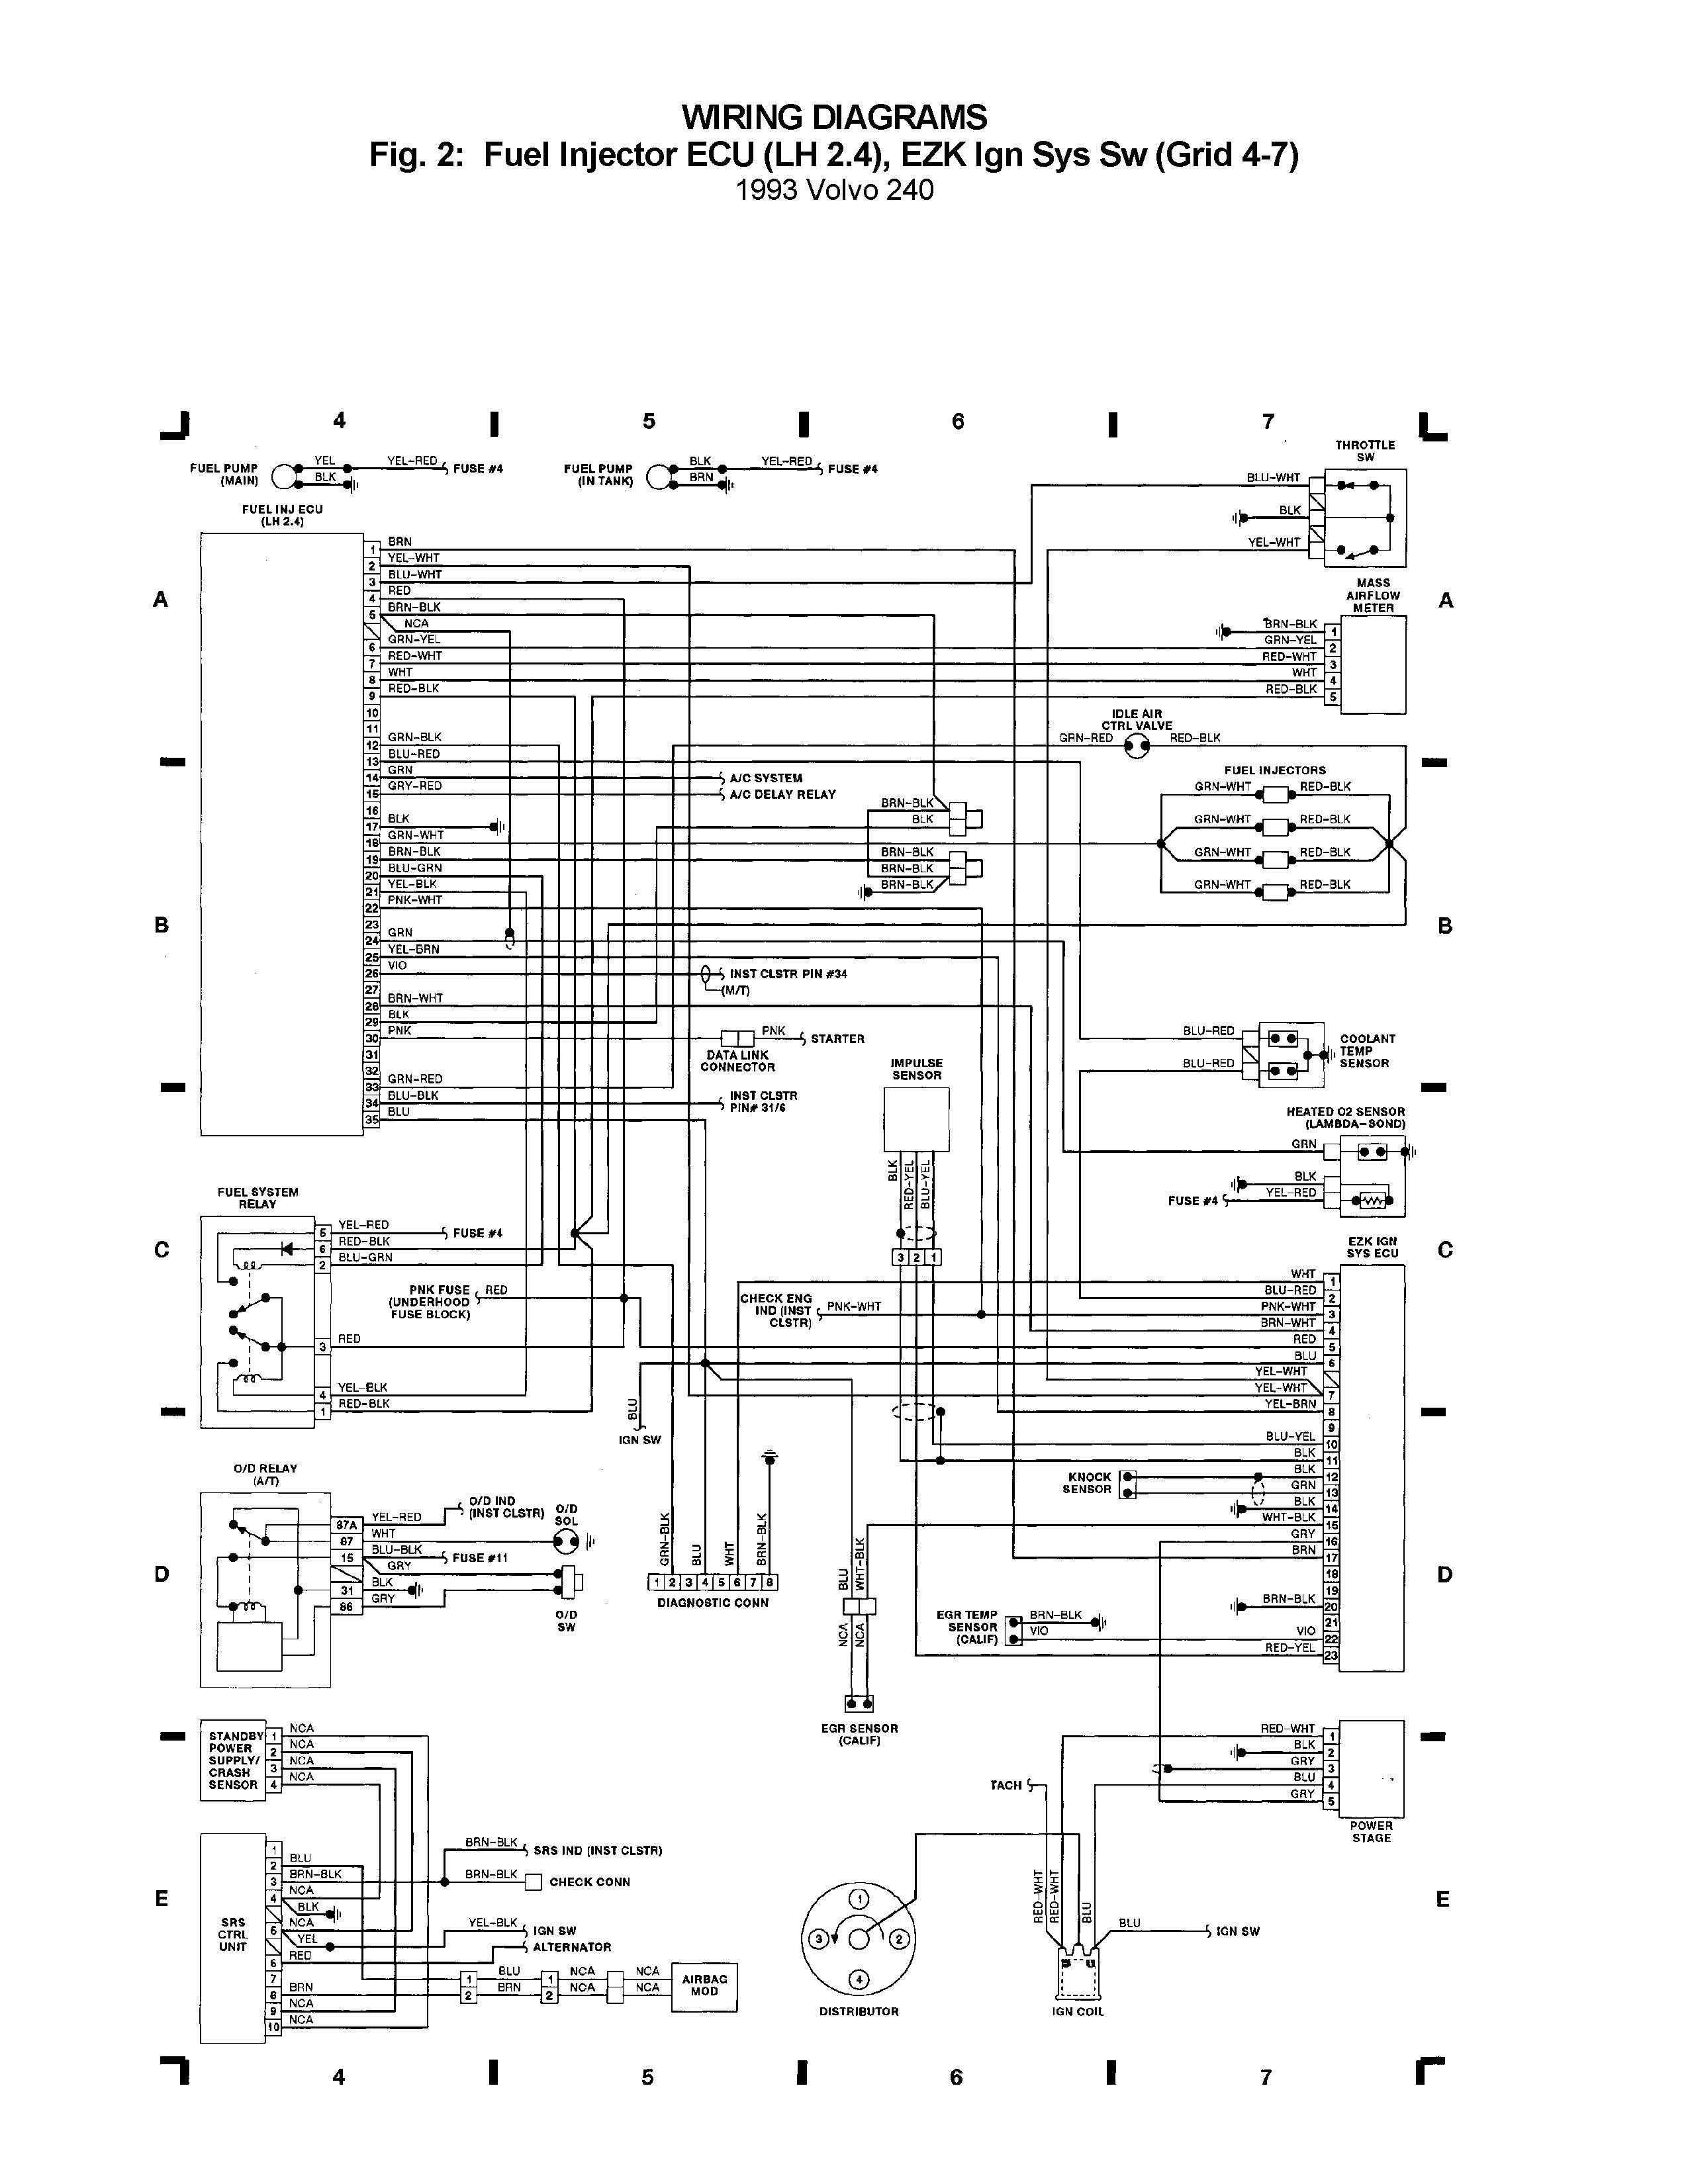 Volvo 240 Wiring Diagram Charging System 1992 Ac Cool 670 Delphi Gallery Best Image Wire Semi Truck